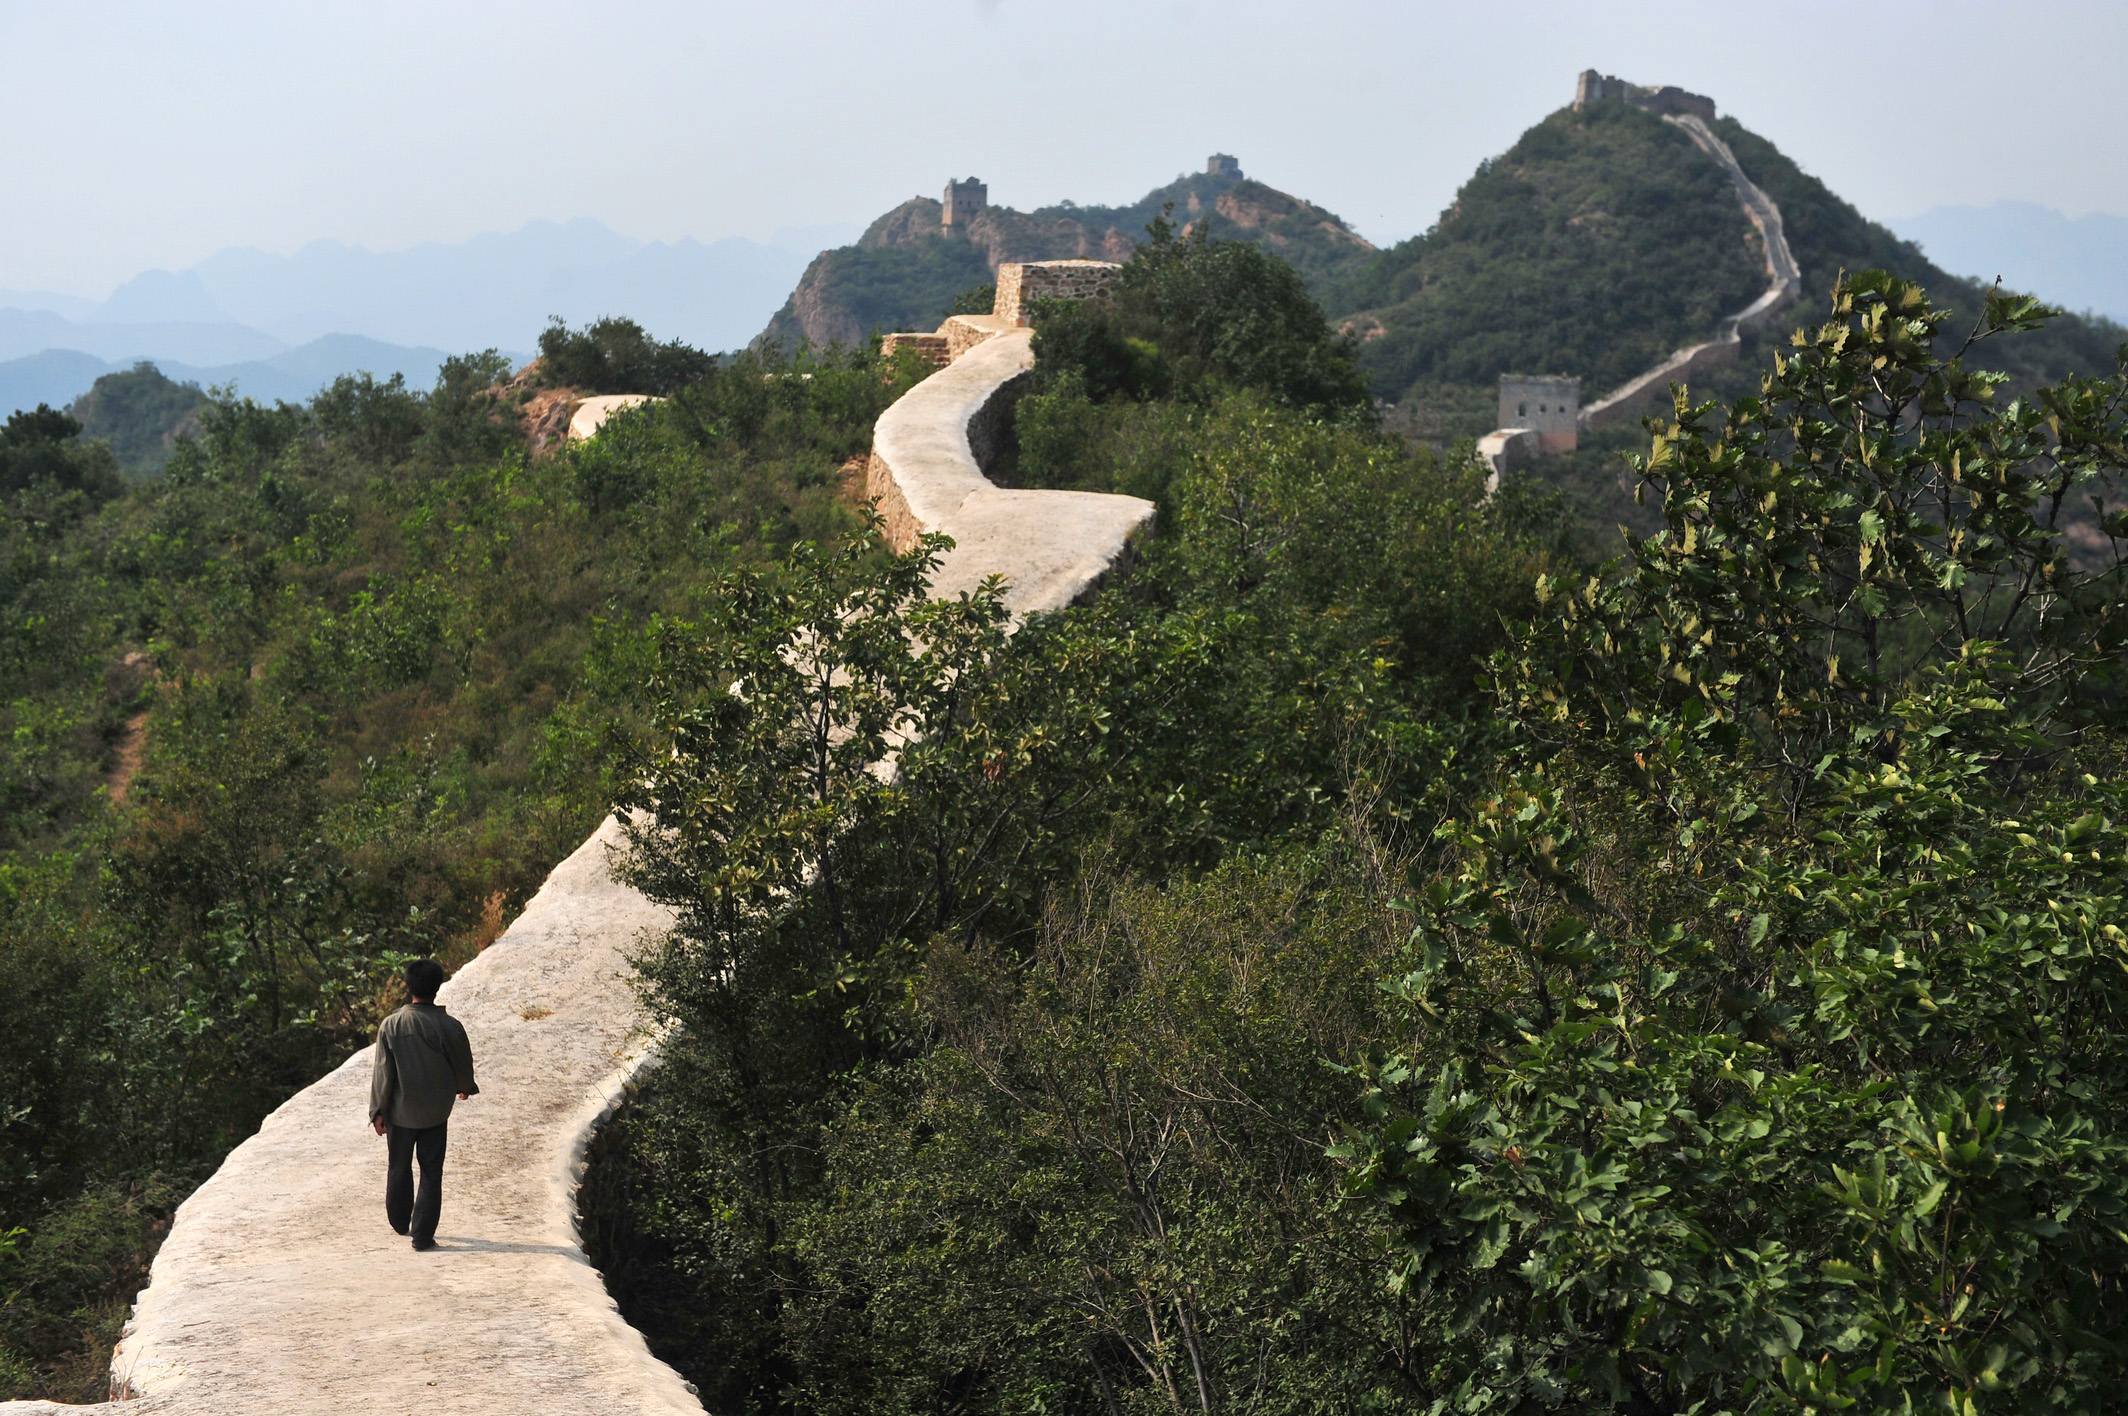 A Chinese farmer walks on a restored section of the Xiaohekou Great Wall, a wild stretch of the Great Wall, in Suizhong county, Huludao city, northeast China's Liaoning province, Sept. 21, 2016.